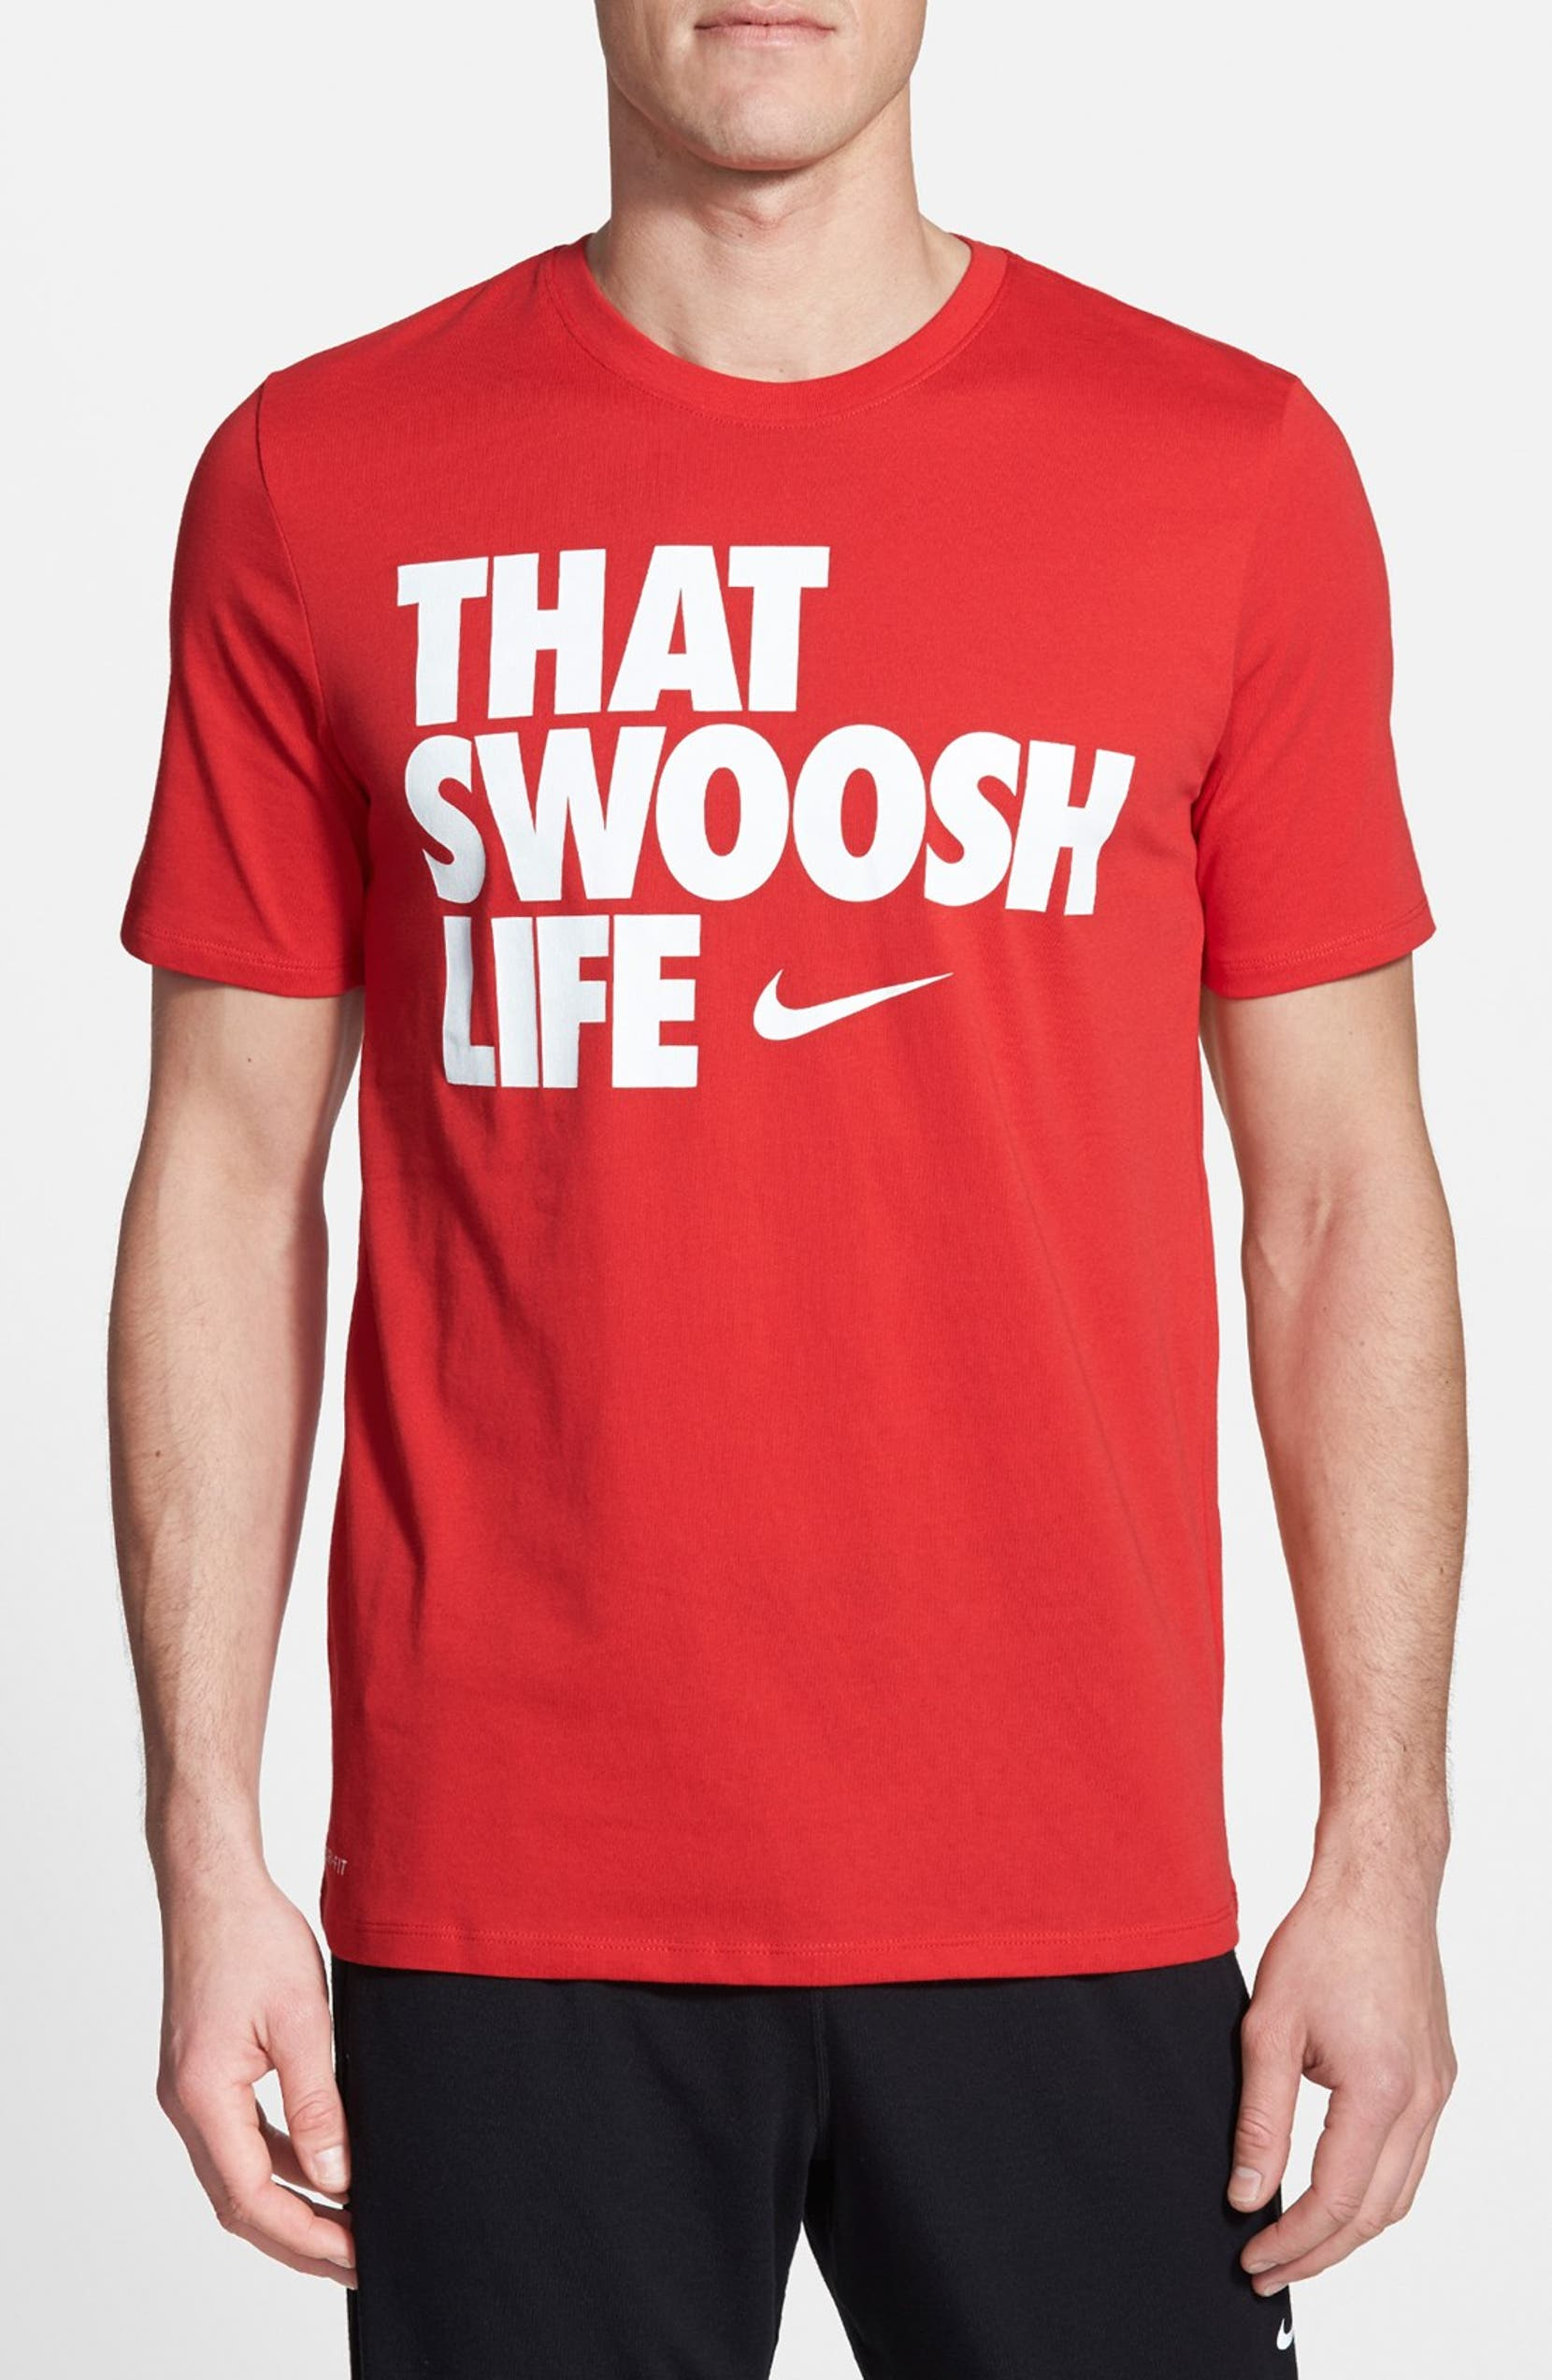 96fa38a4 Nike 'That Swoosh Life' Dri-FIT Graphic T-Shirt | Nordstrom